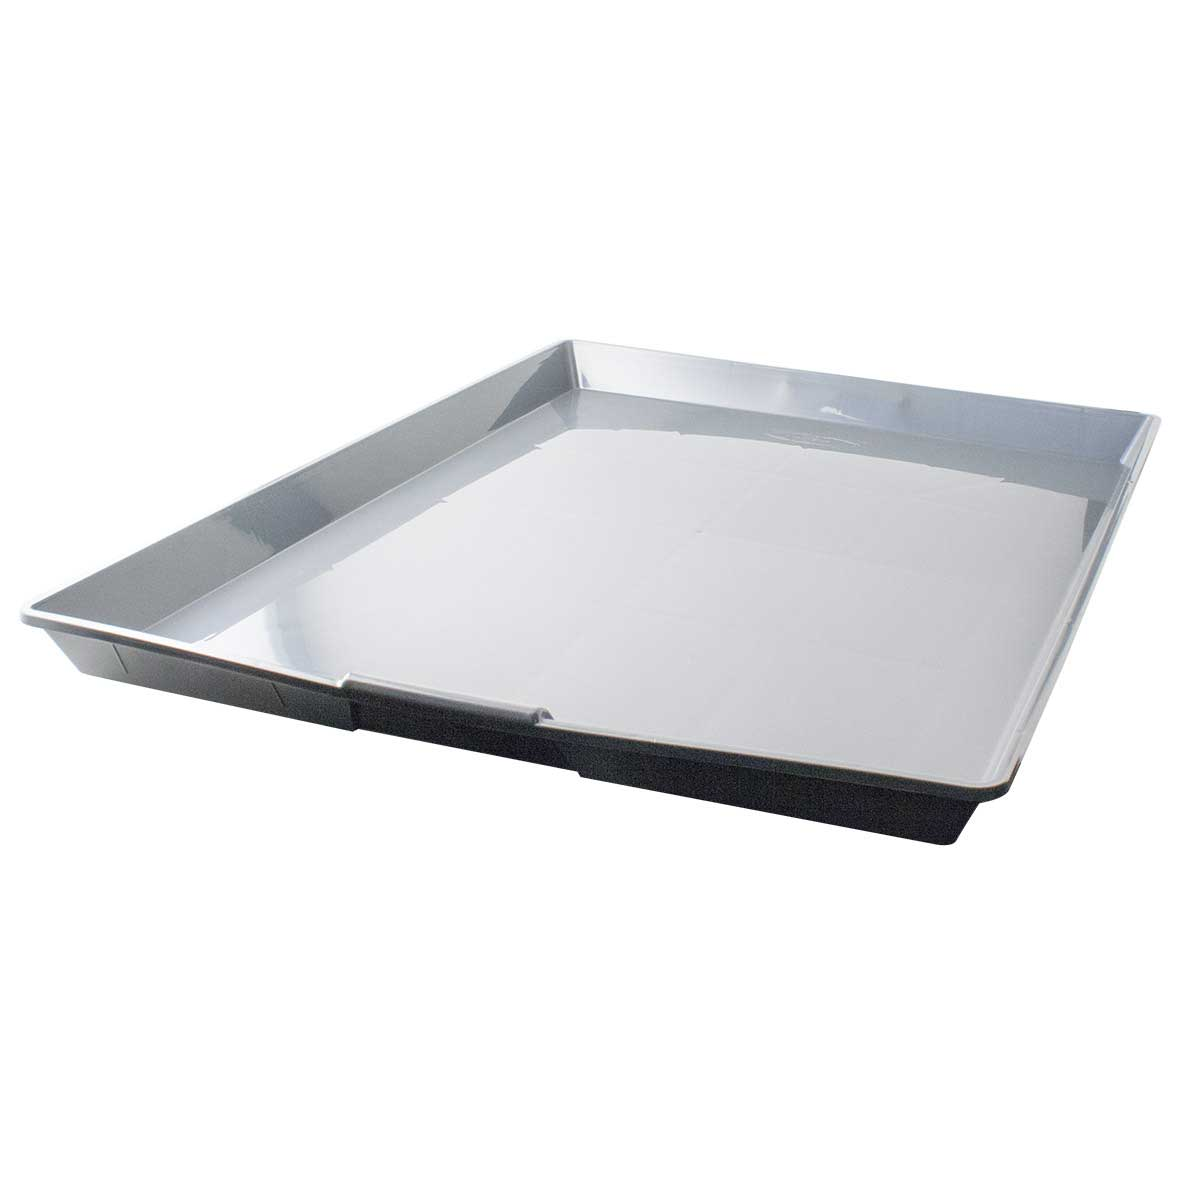 ABS Plastic Pan For PBP89410 & PBP89435C